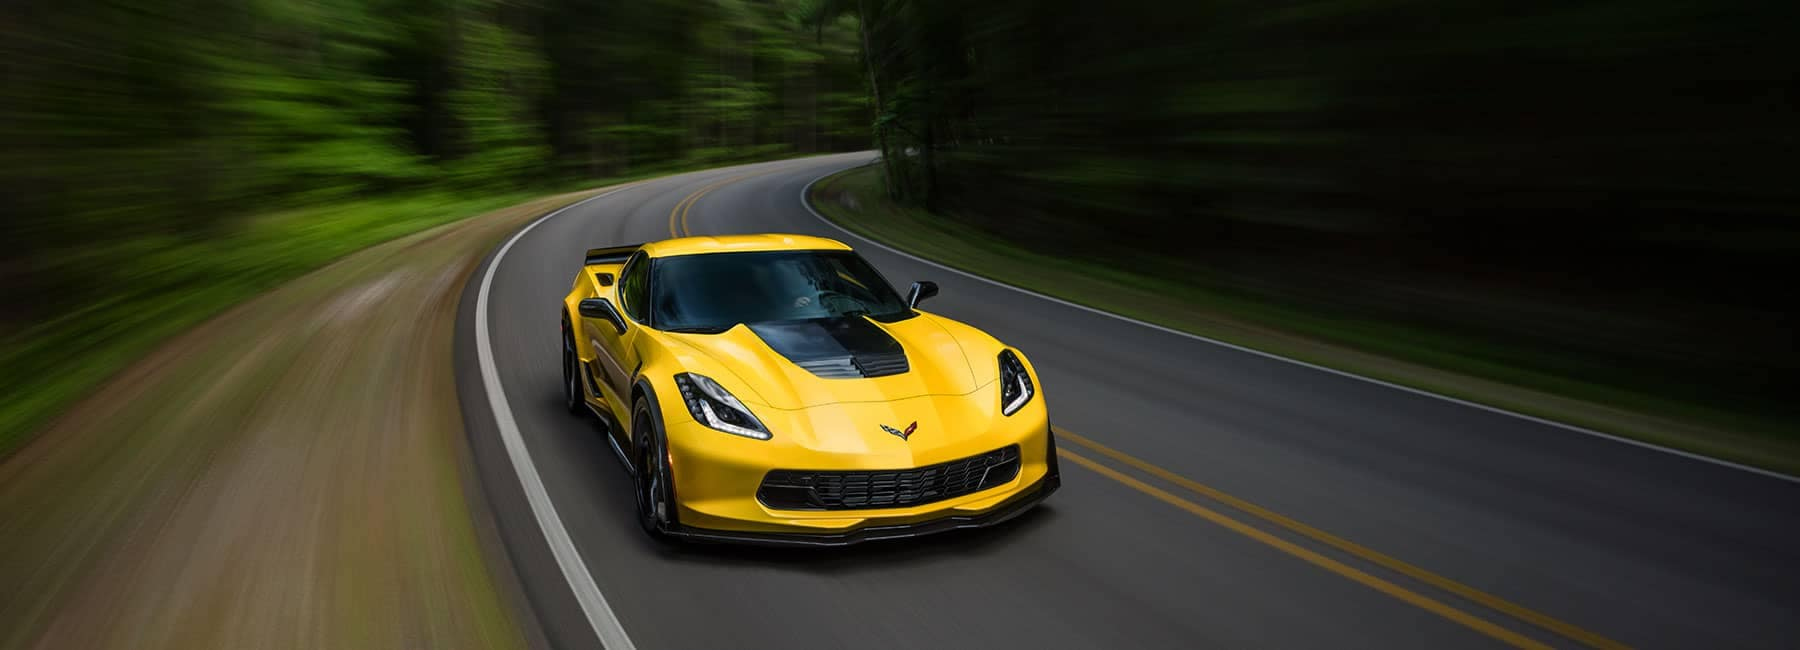 2019 Chevrolet Banner image of a yellow Corvette cruising through a wooded one lane road